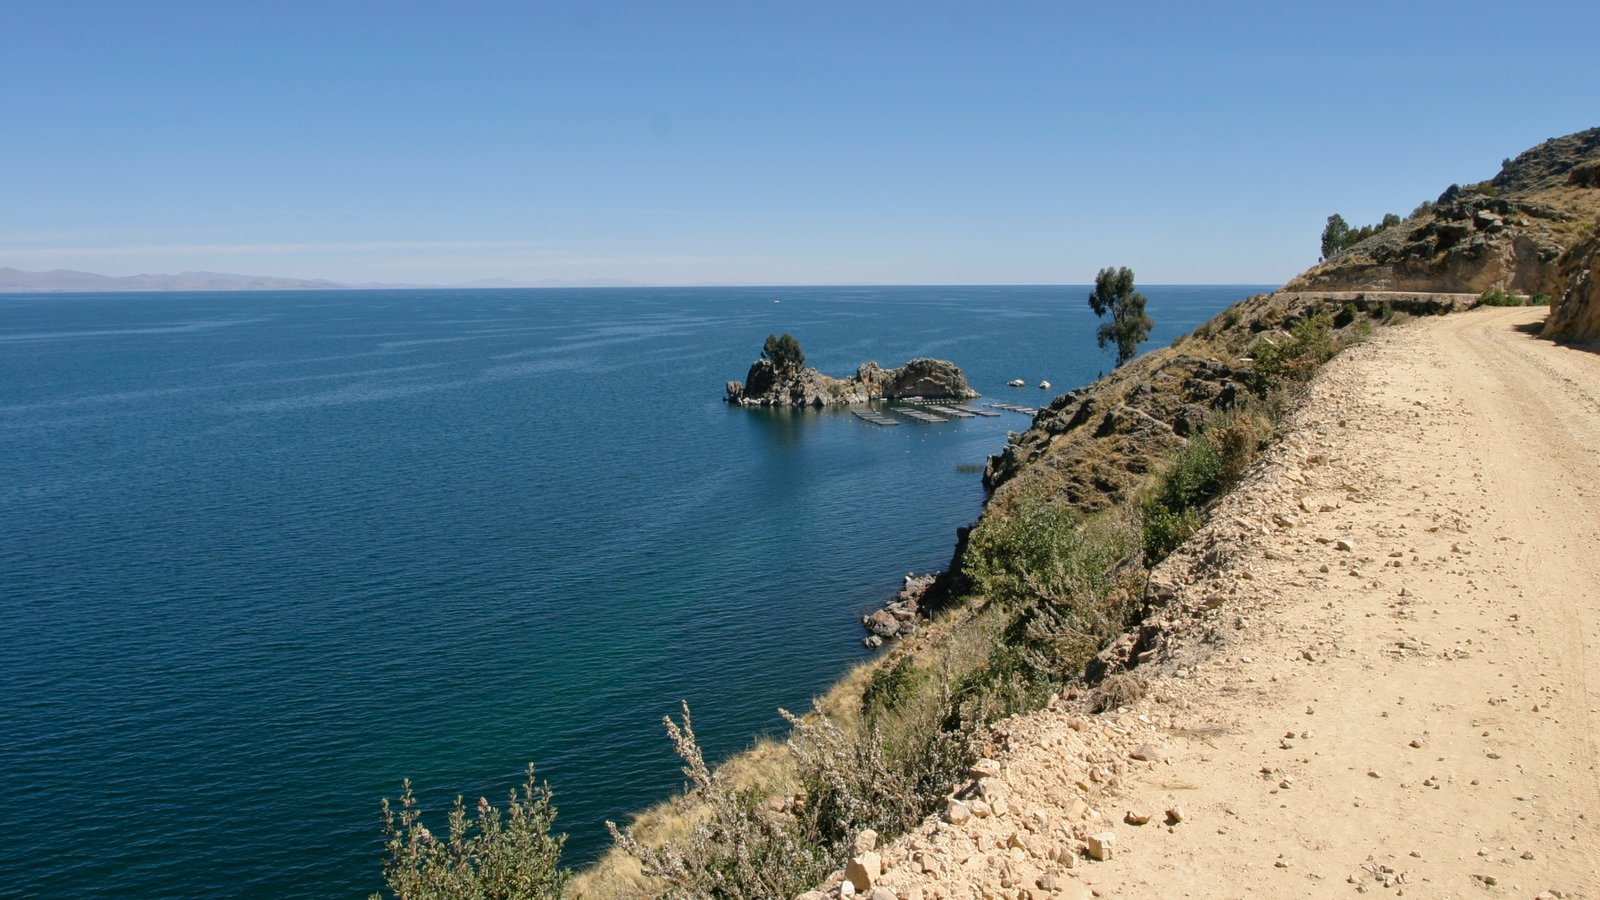 Lake Titicaca - Puno which includes landscape views and general coastal views